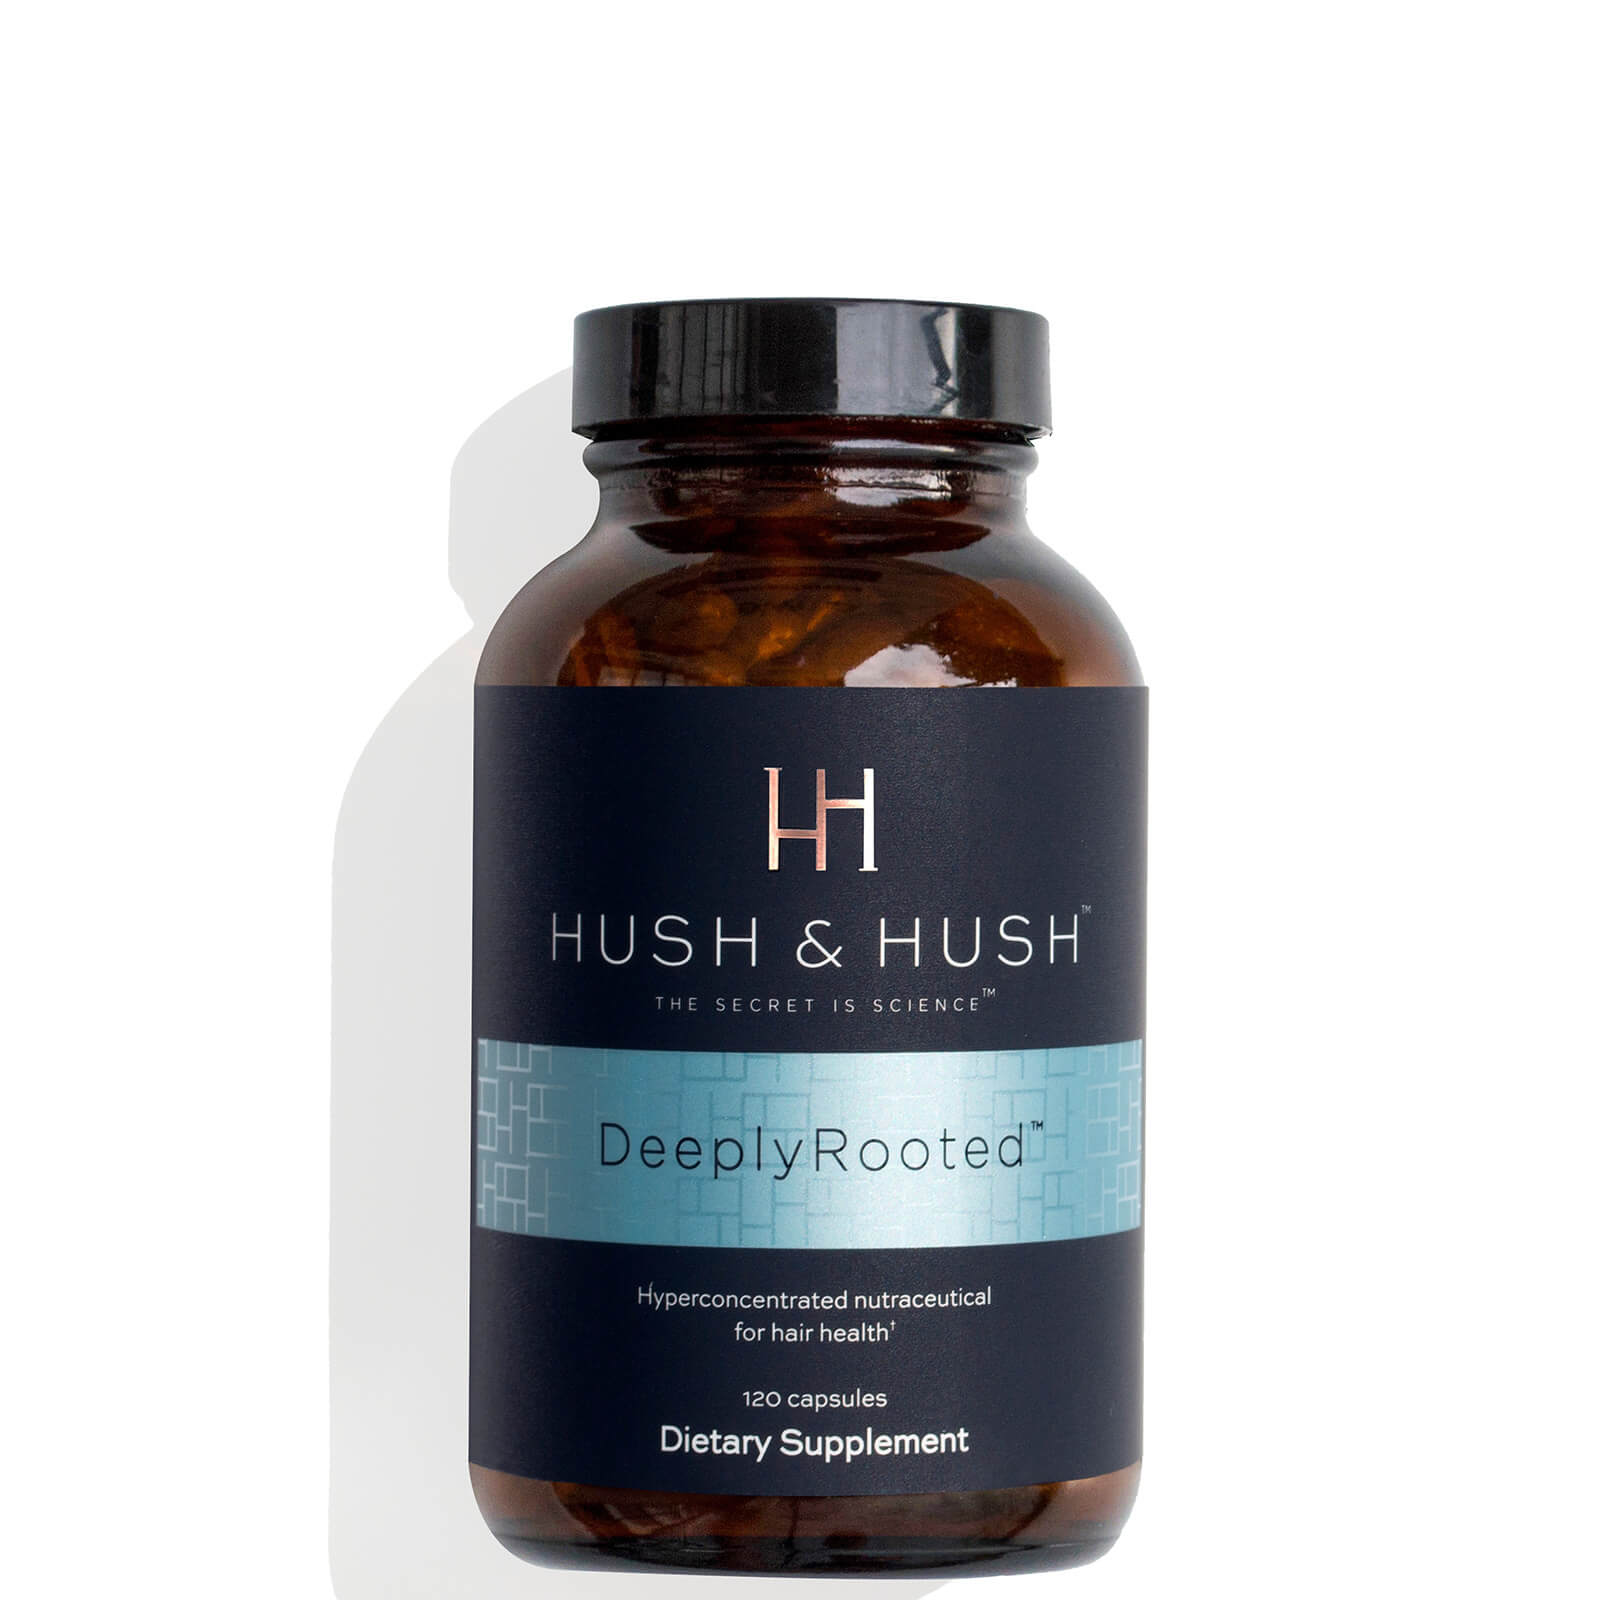 Hush & Hush DeeplyRooted® Hair Supplement 120 Capsules